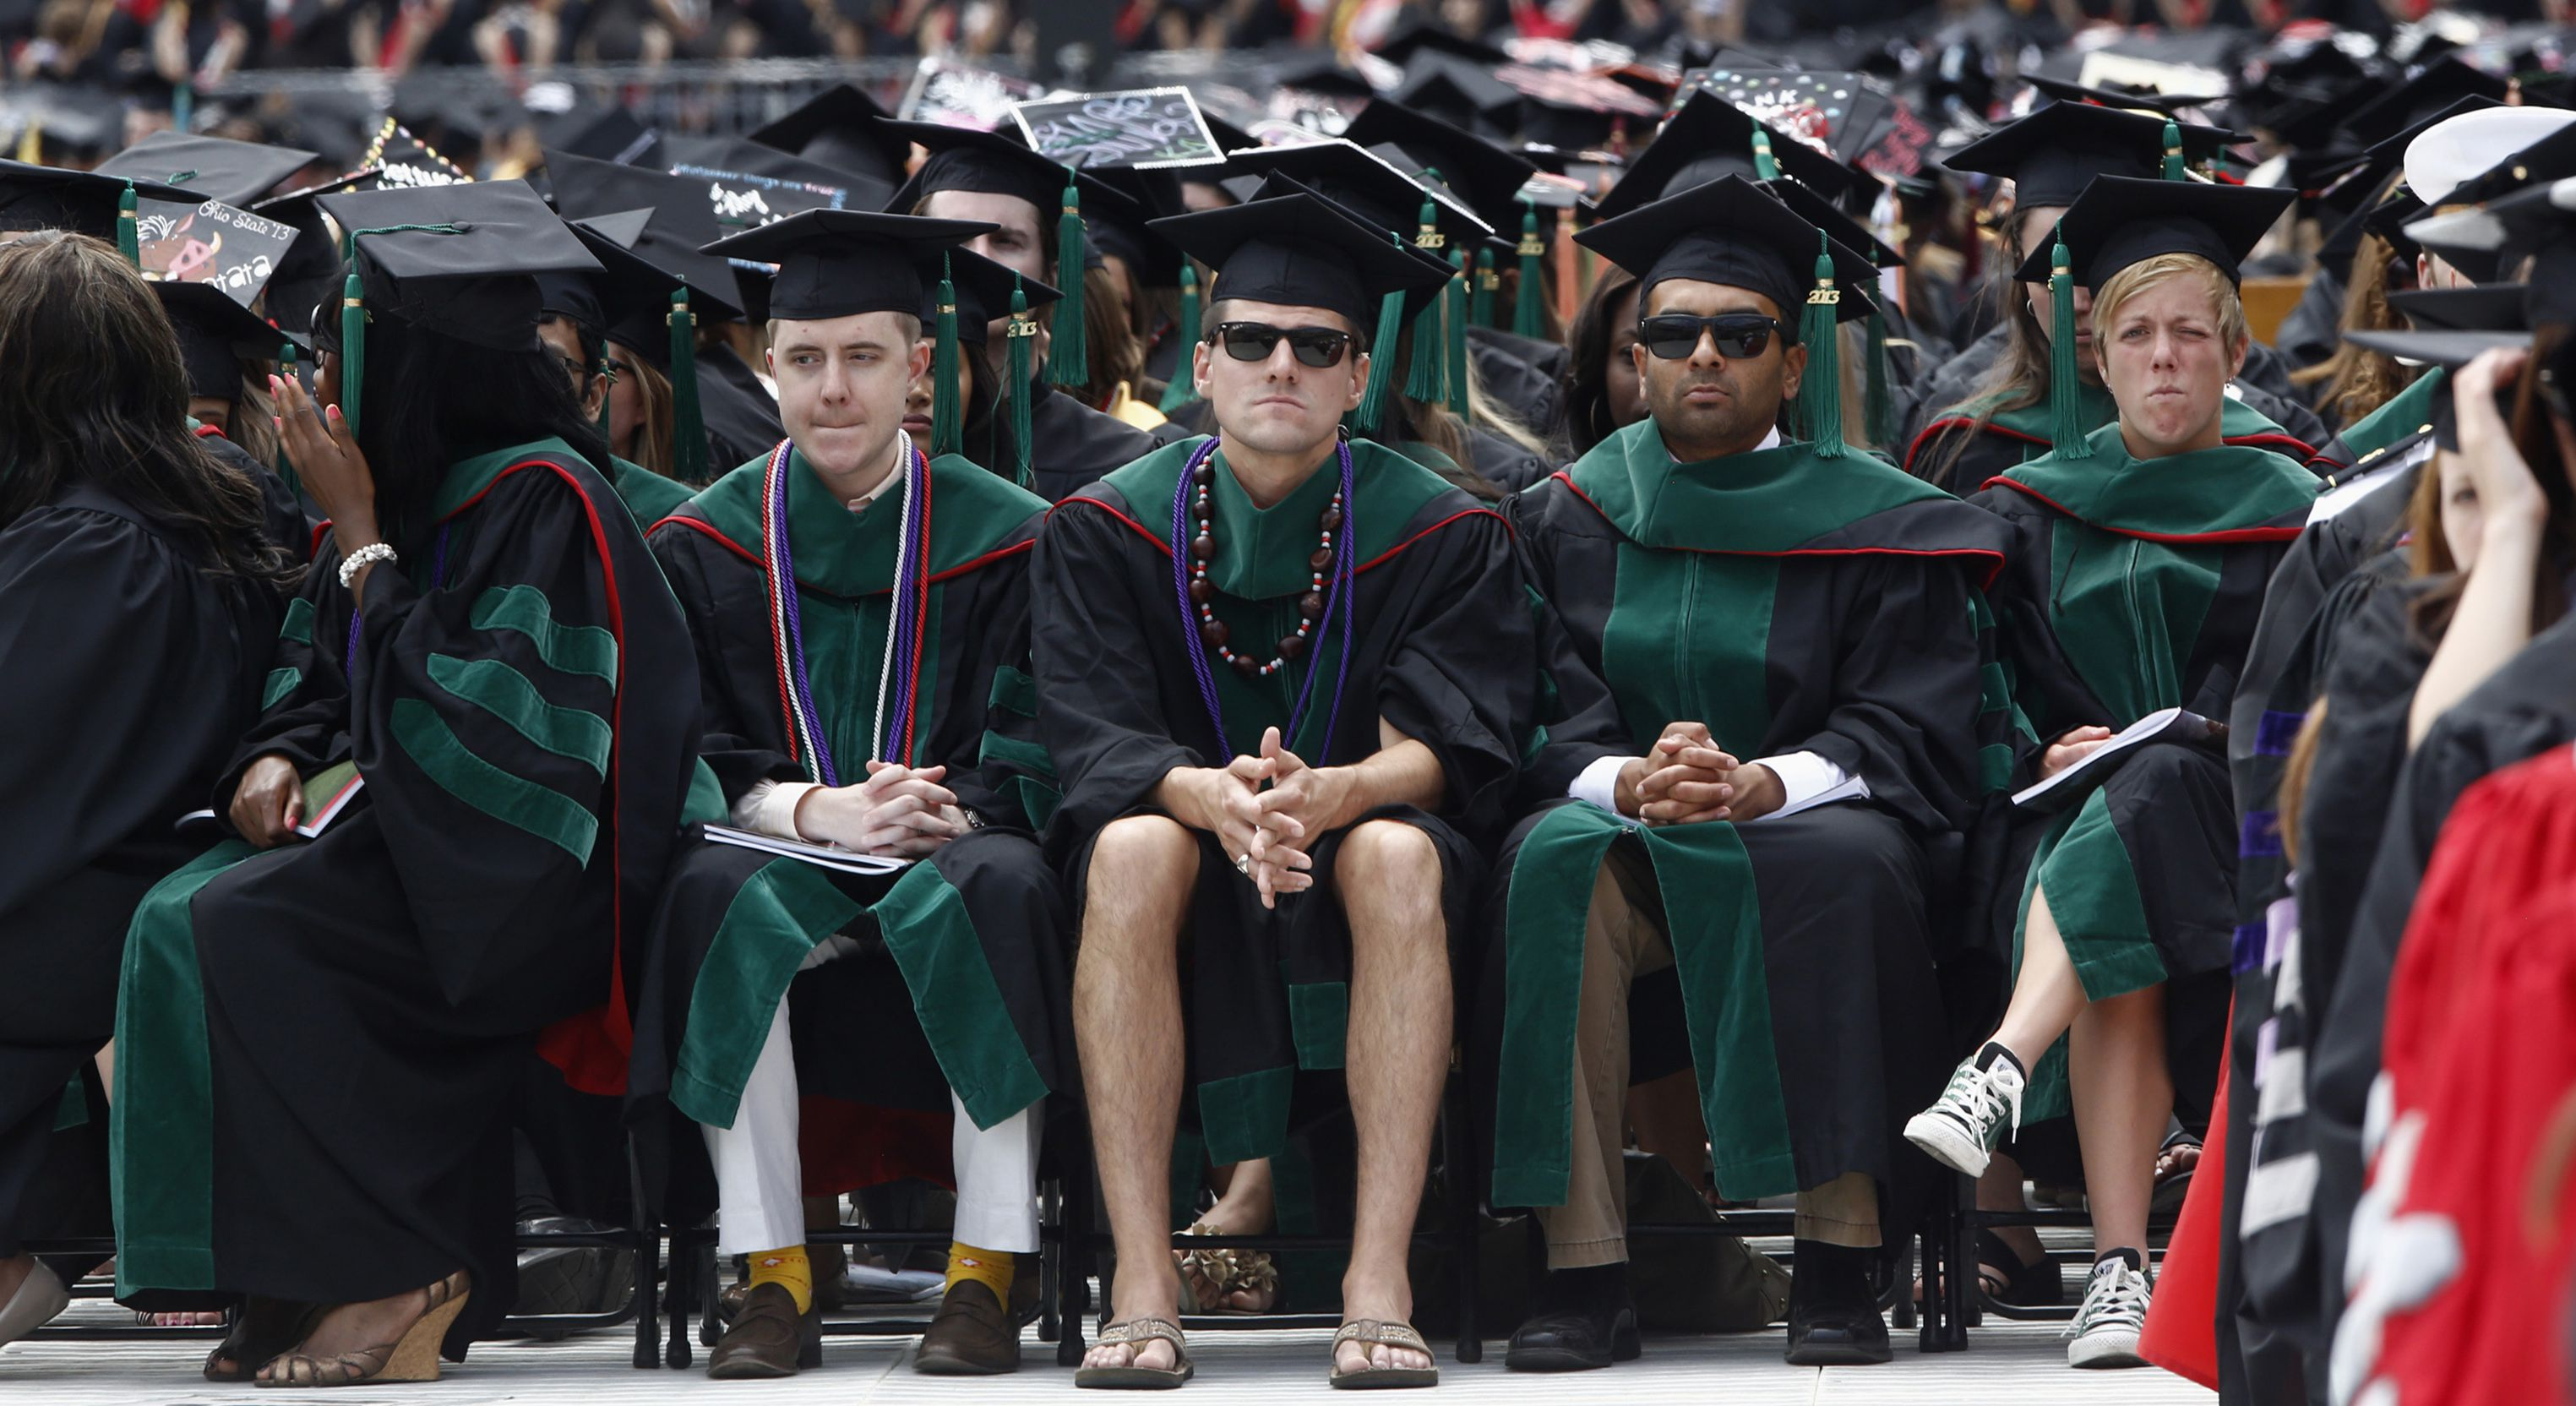 These Are The 10 Best First Jobs For Economics Majors